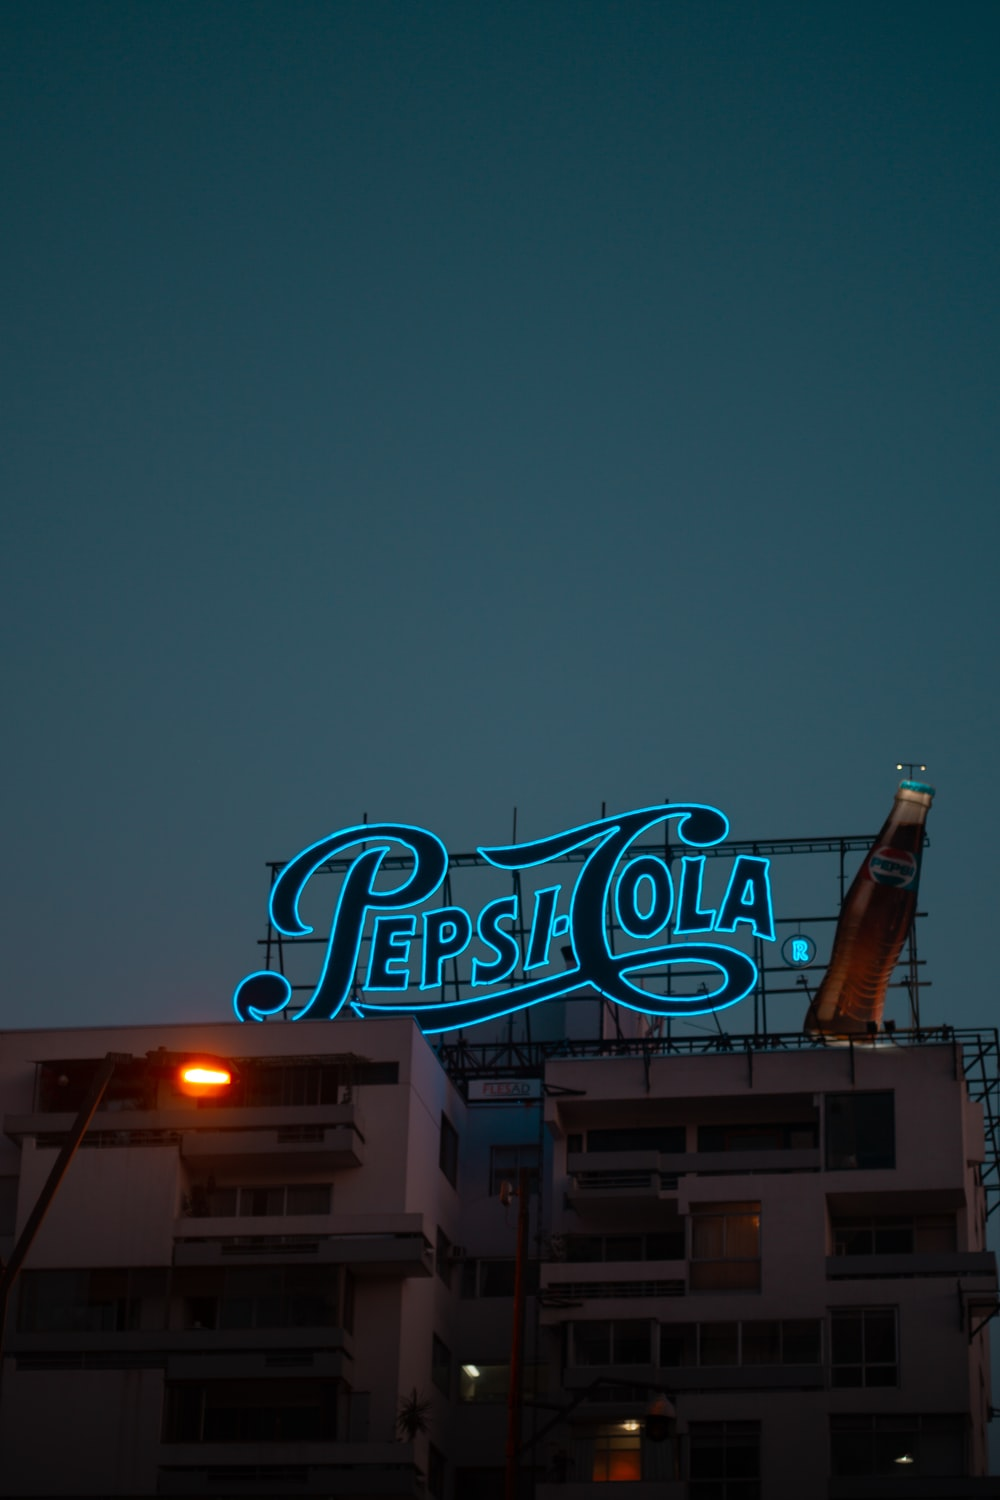 blue and black Pepsi Cola neonlight on top of building